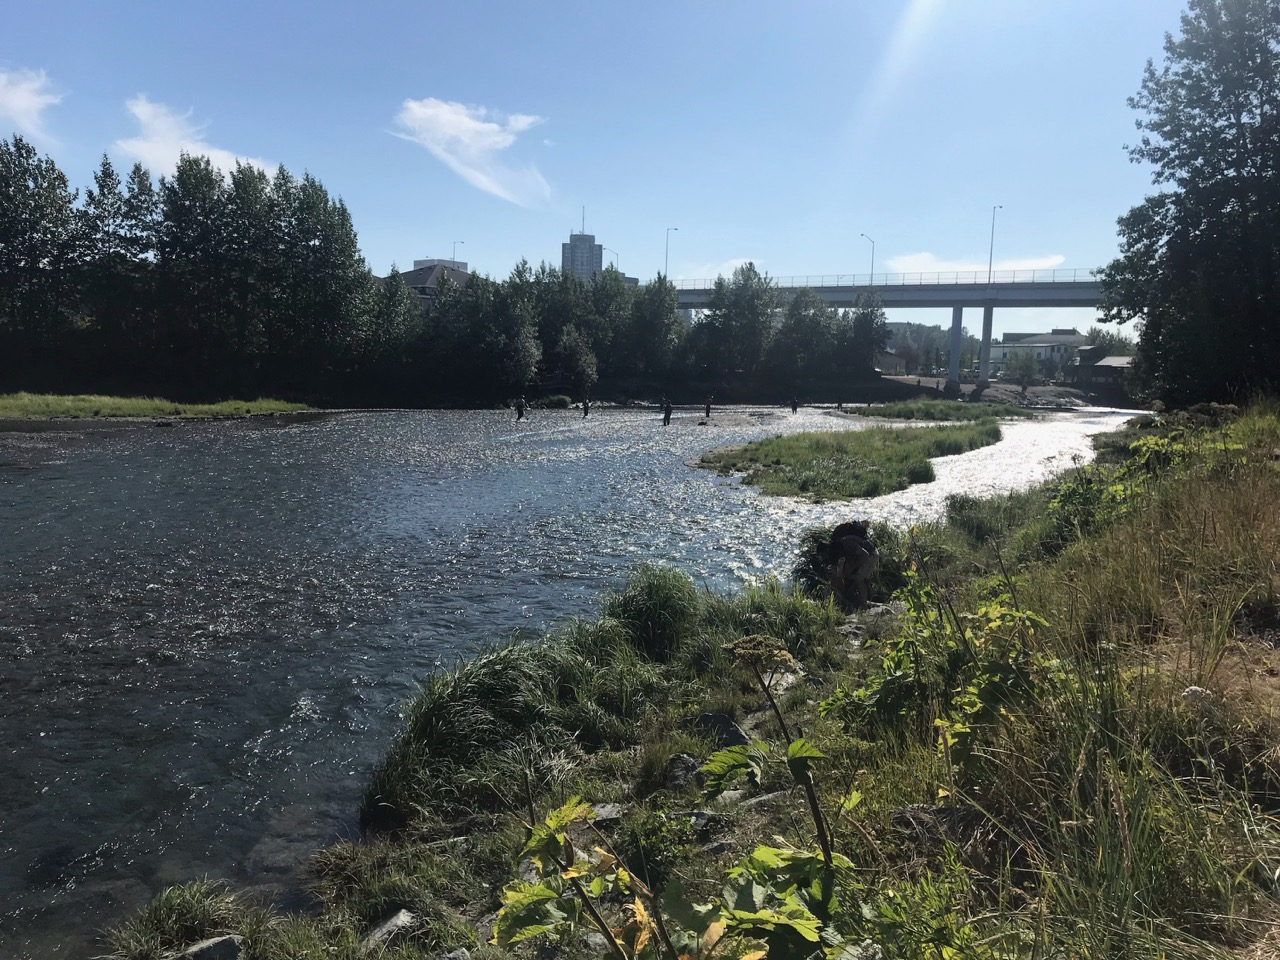 Ship Creek is home to thousands of salmon.